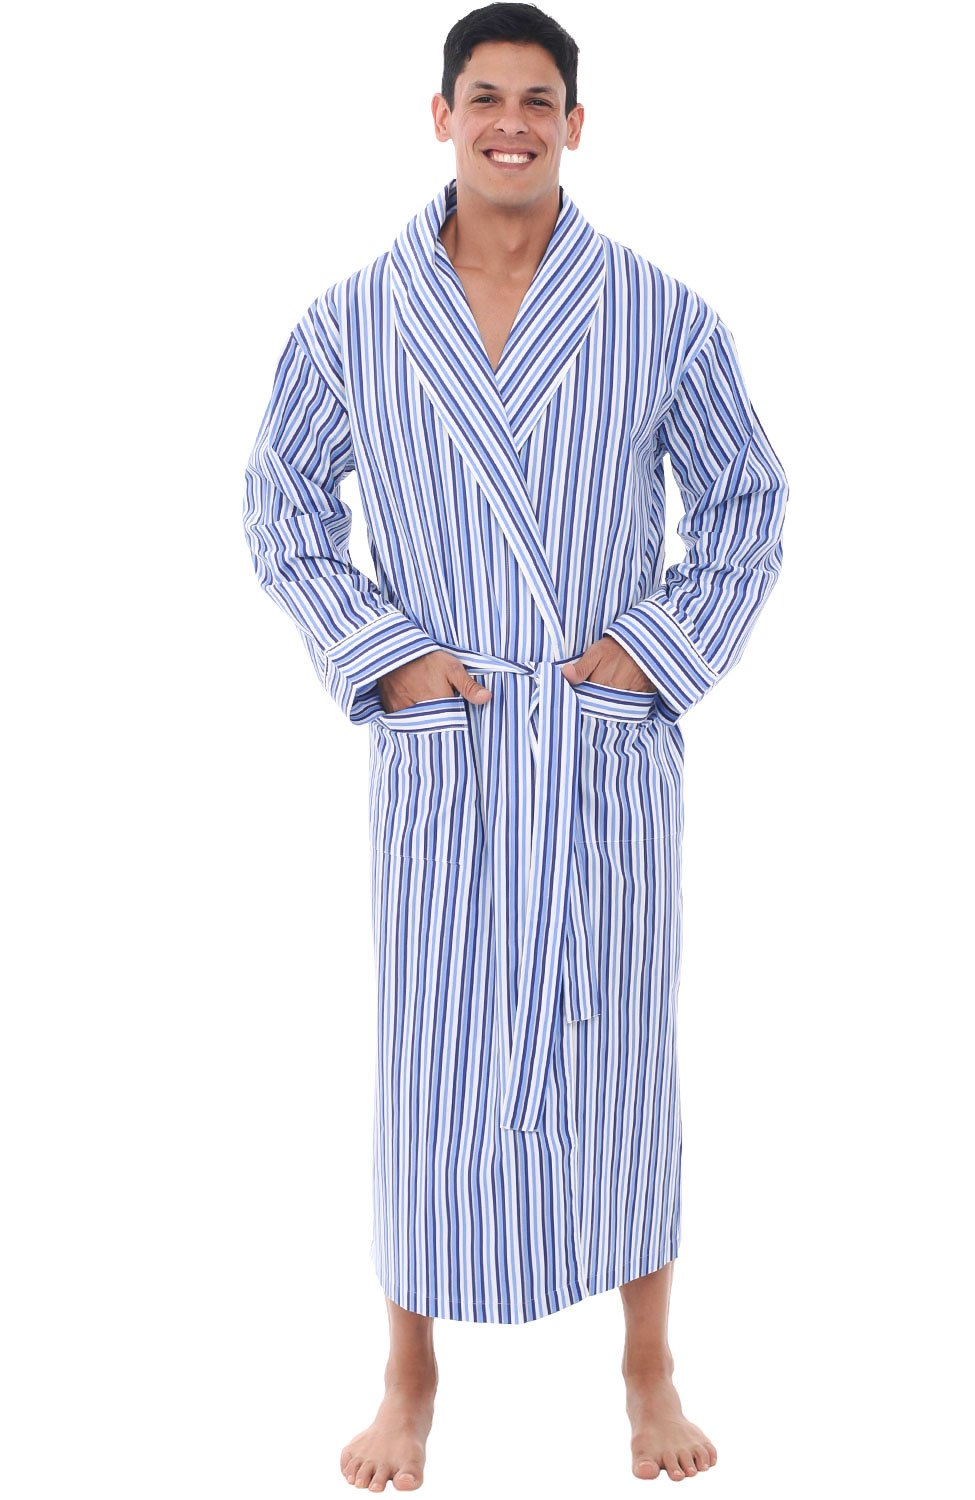 Alexander Del Rossa Mens Cotton Robe, Lightweight Woven Bathrobe, Large Dark Blue and White Striped (A0715P19LG)